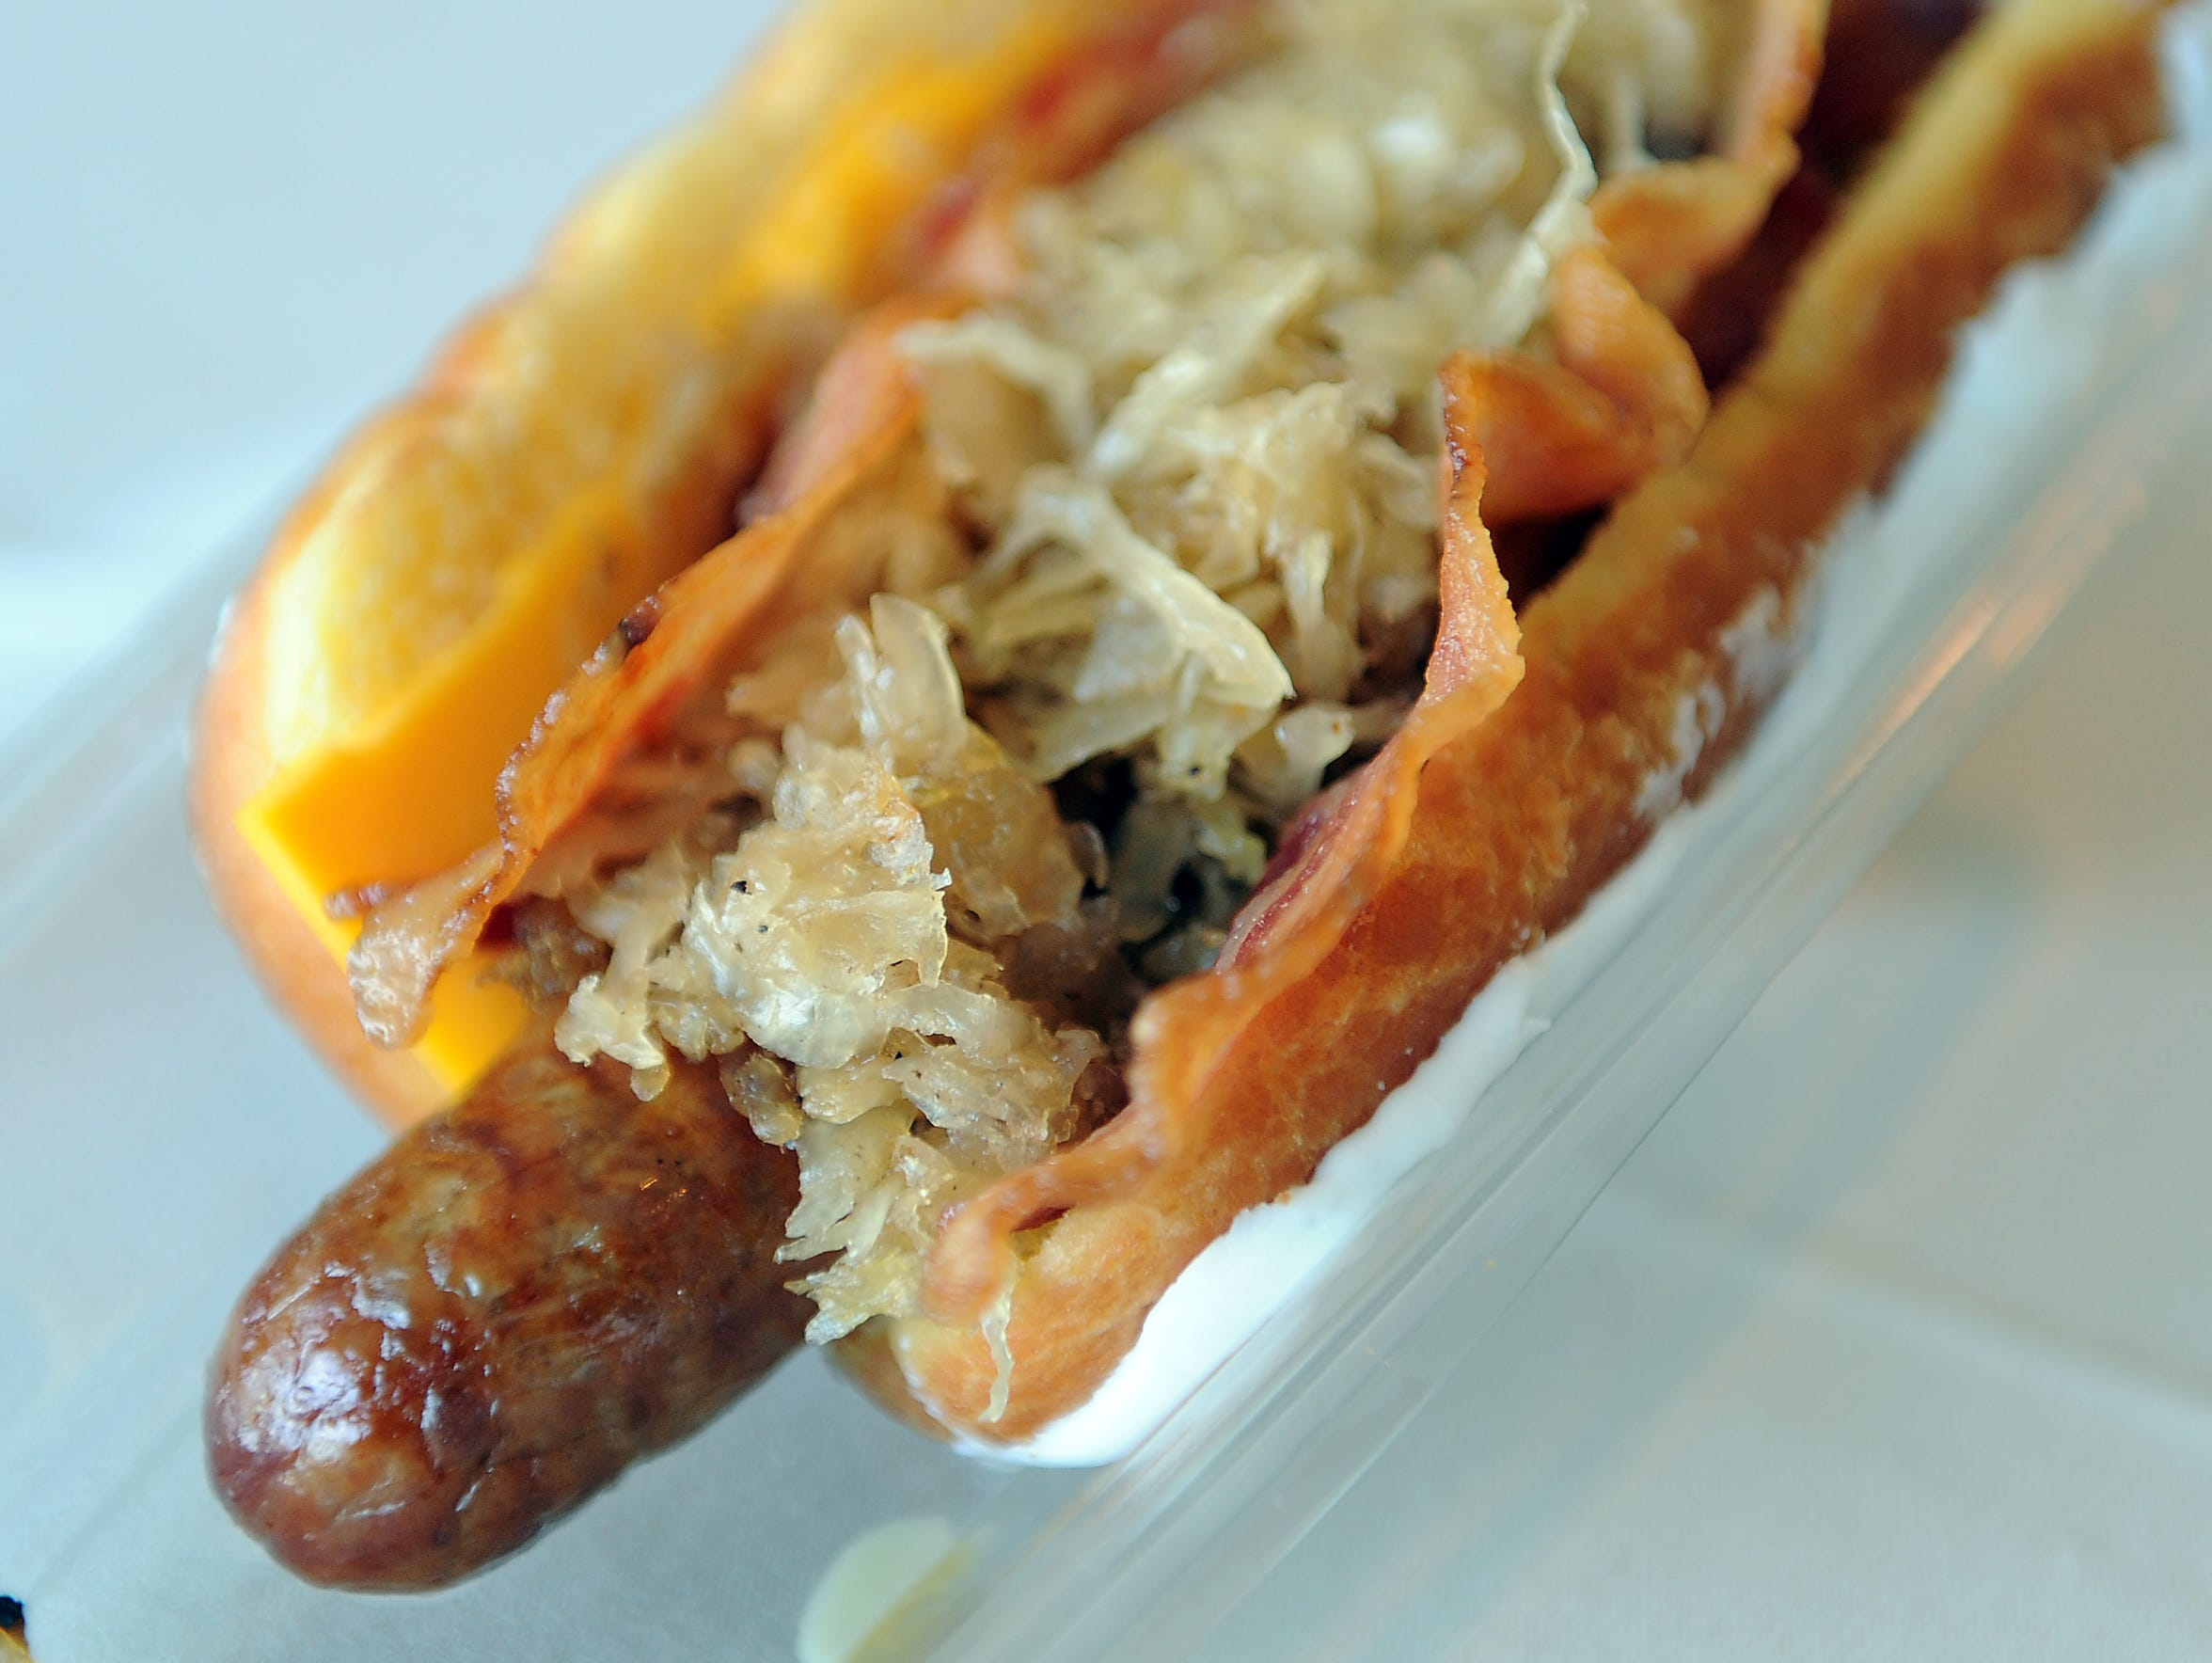 The Breakfast Brat is served on a maple long john.